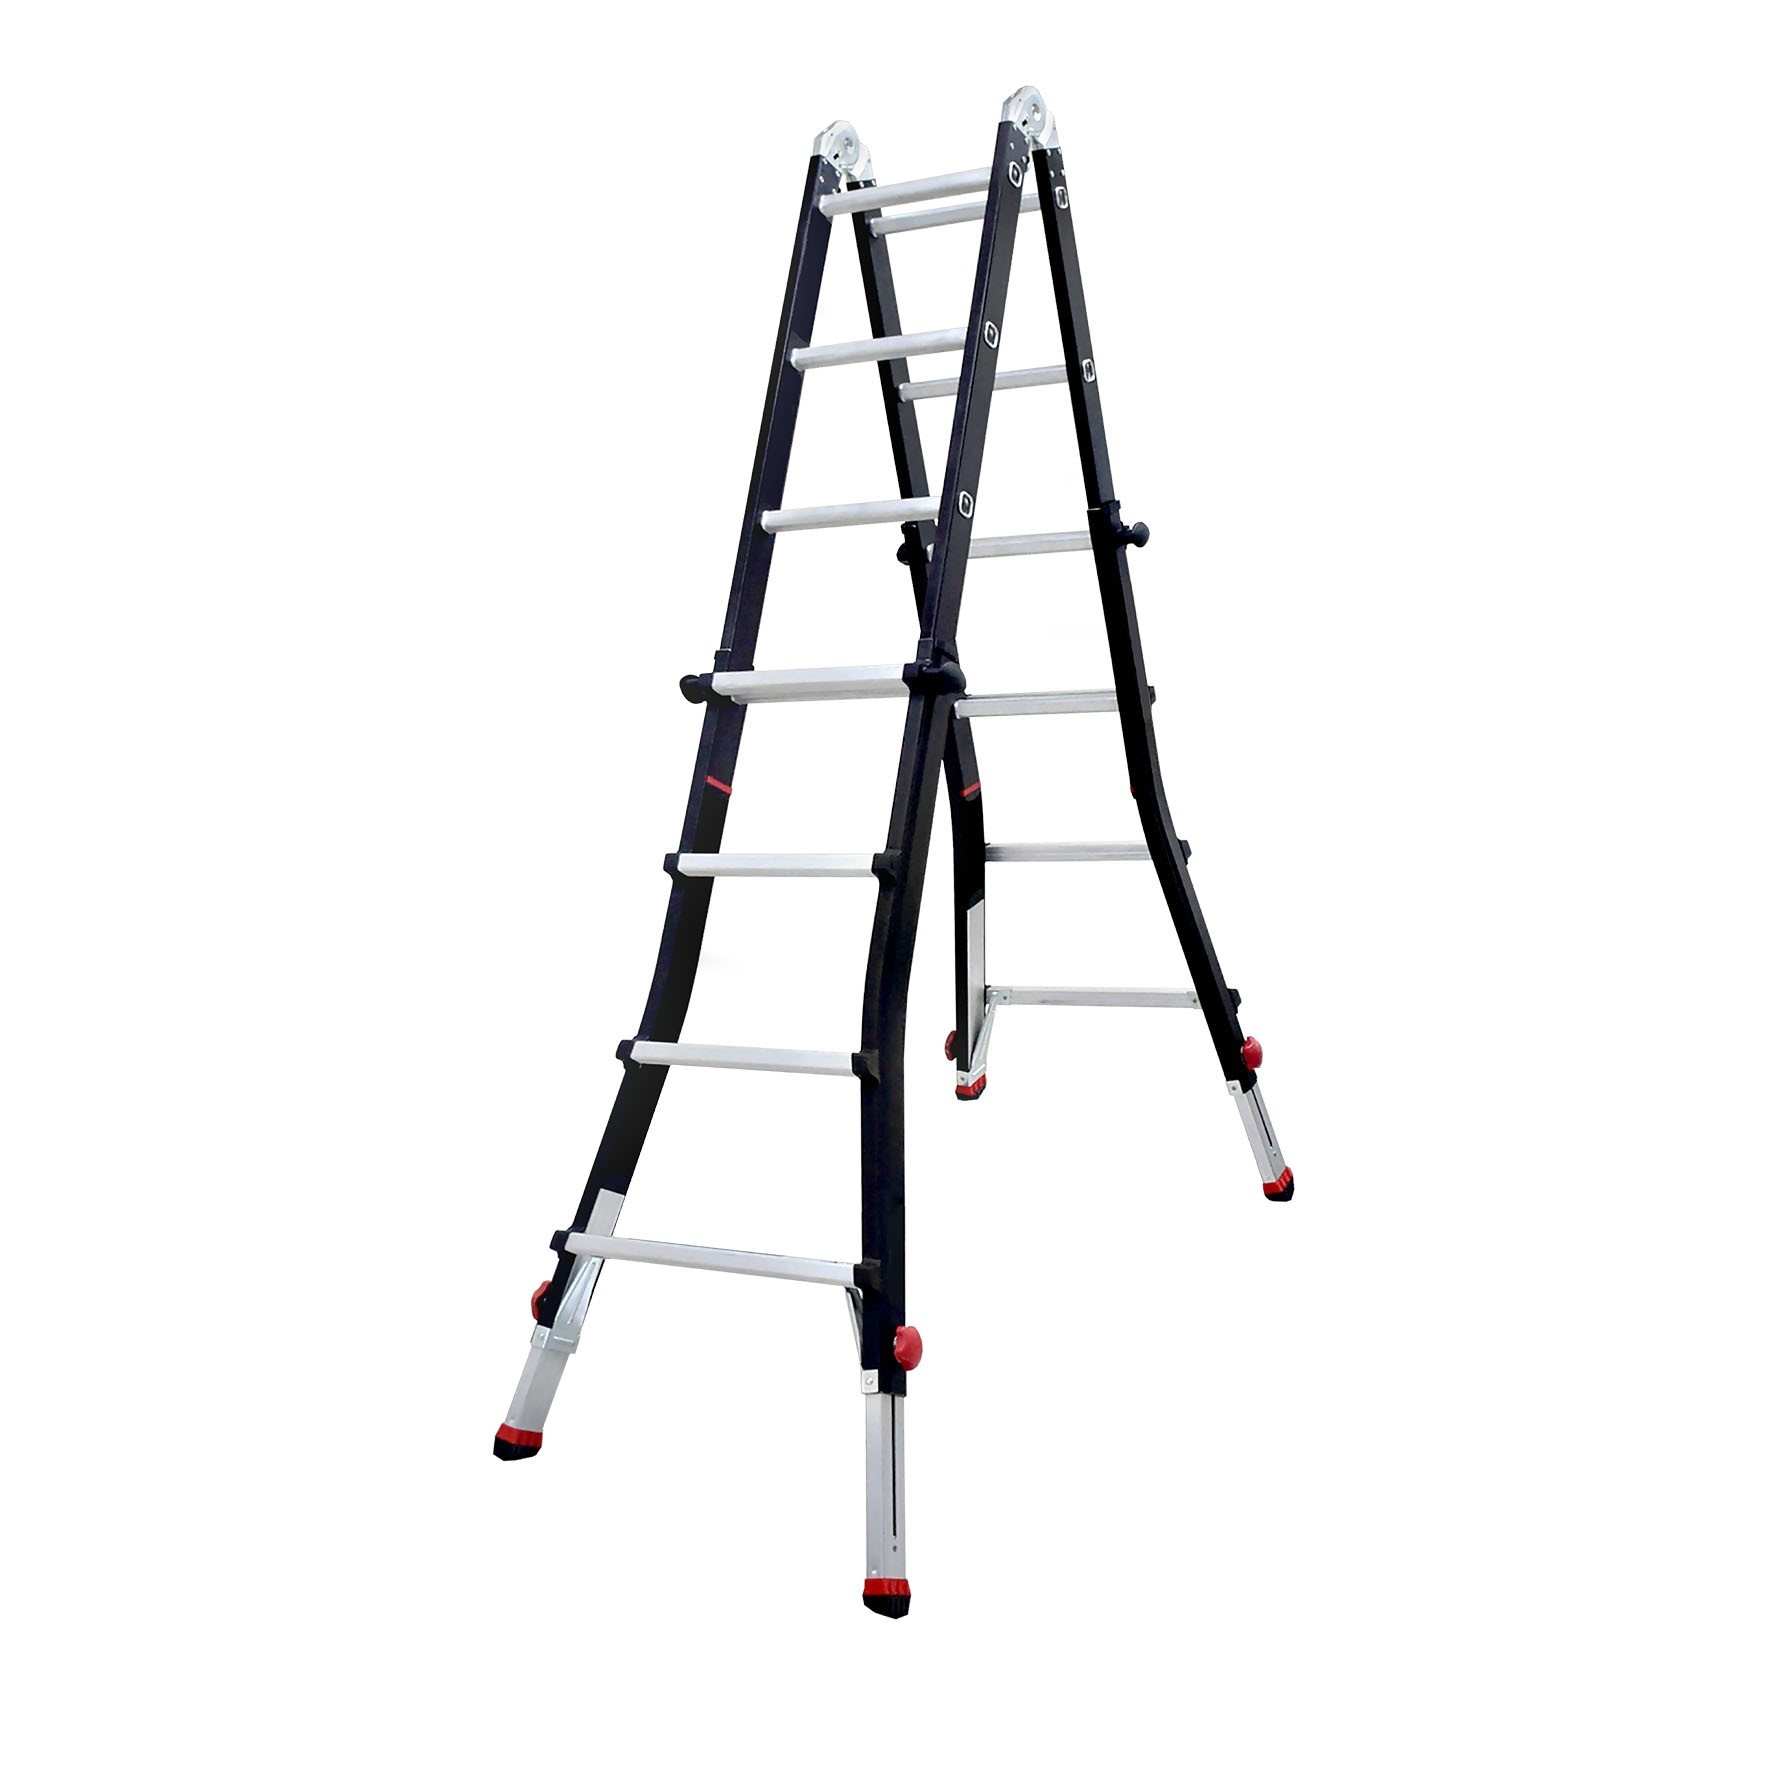 Dofair Telescopic Folding Ladder with Extending Feet (Photo: Business Wire)